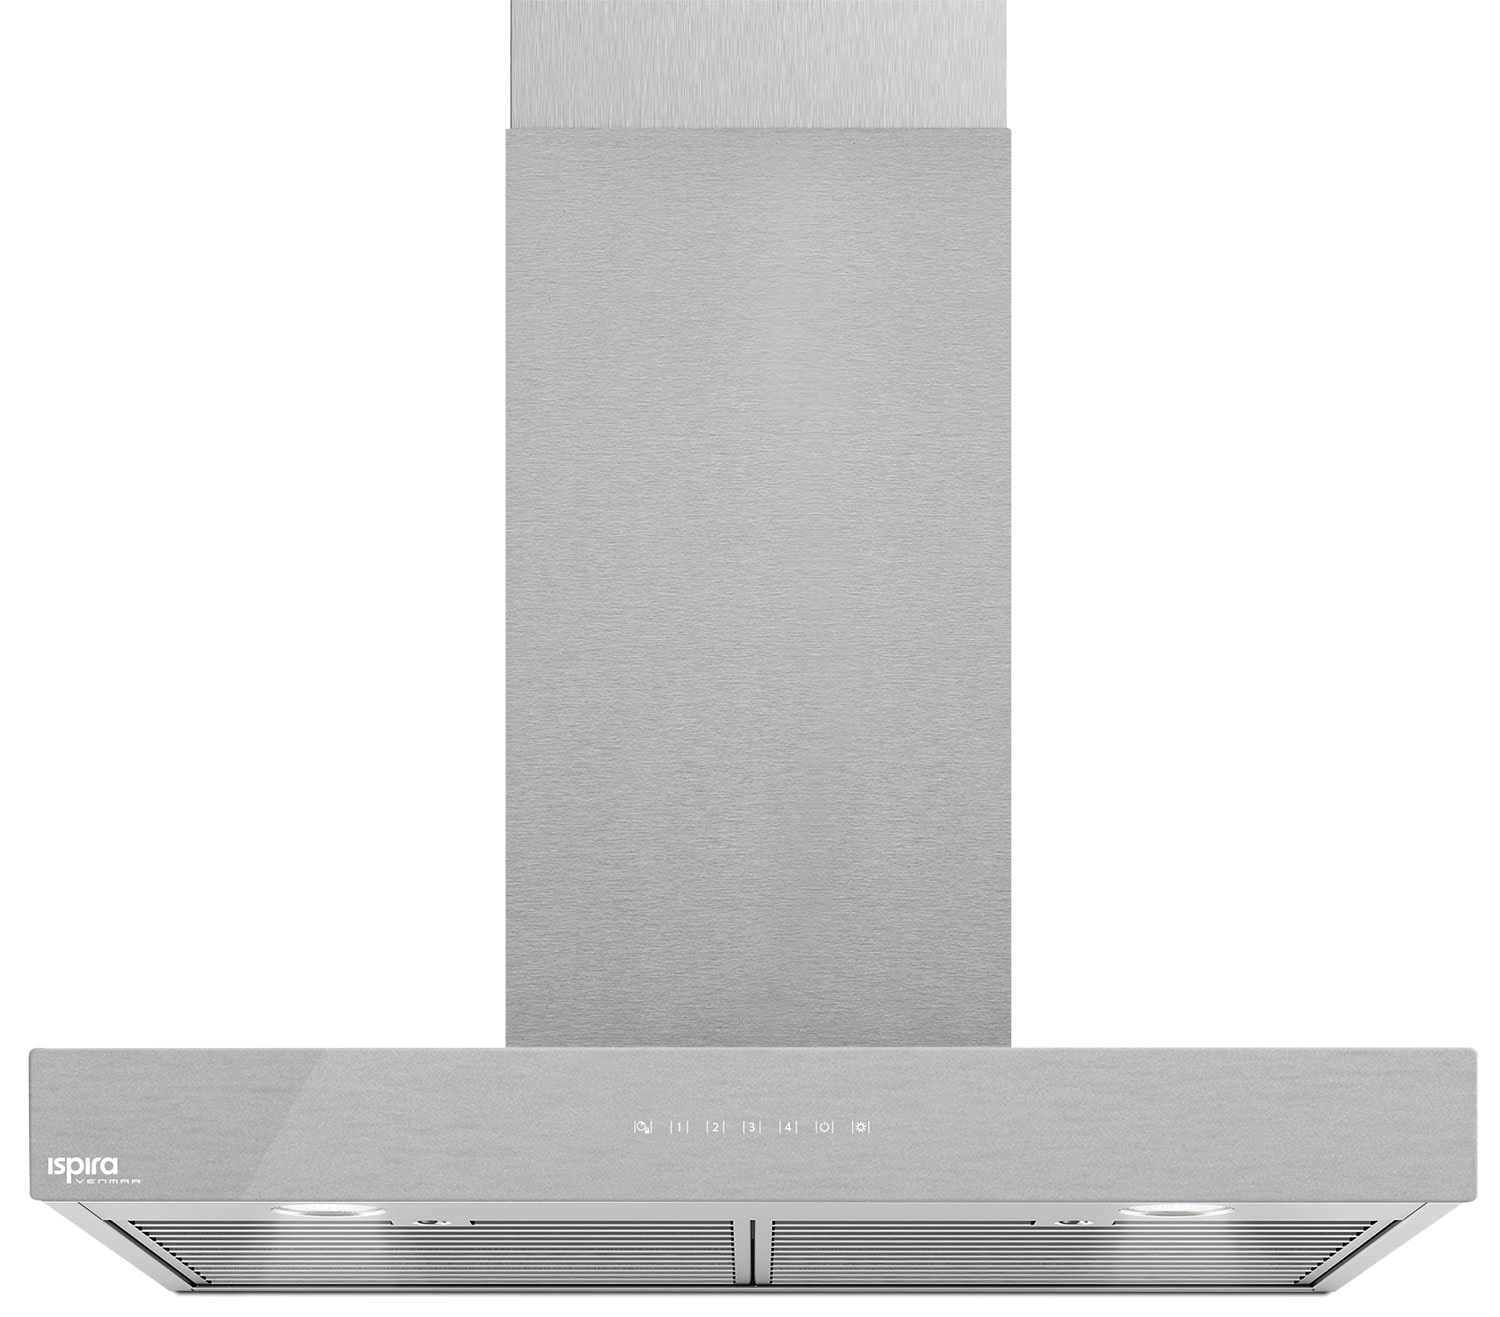 "Venmar Ispira 36"" Chimney Range Hood – Brushed Grey Panel IC70036SS"